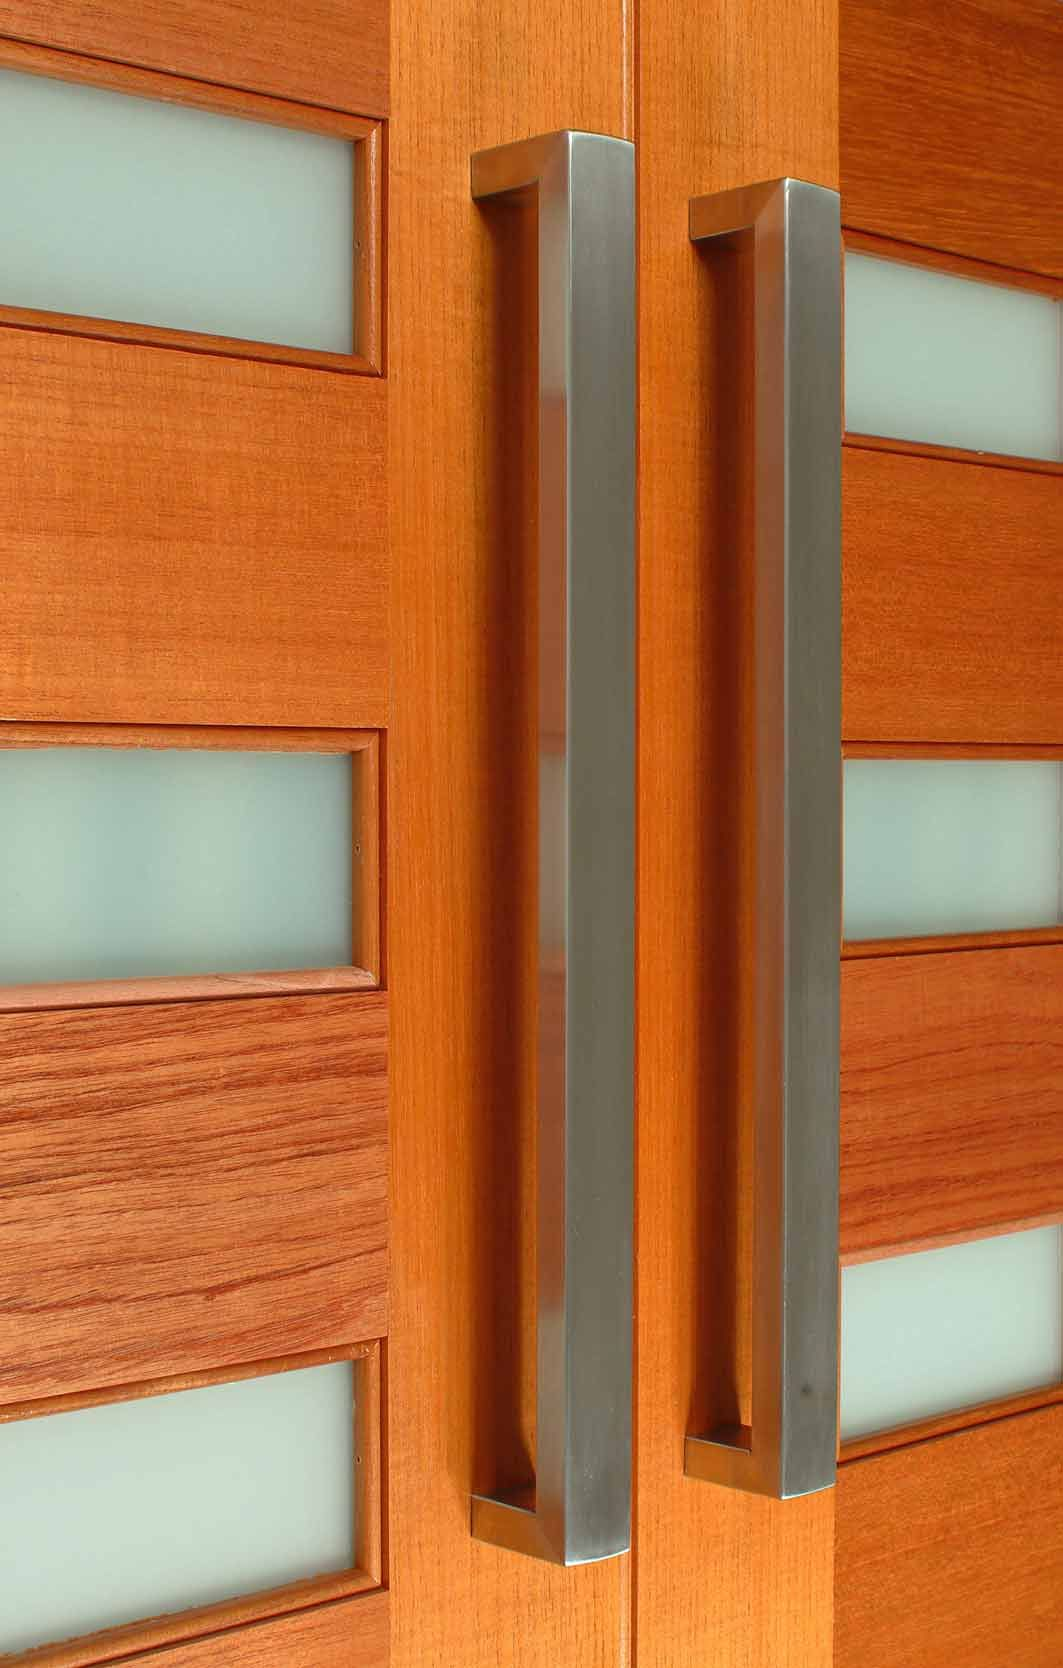 The Mercury Front Door Pull Handle Is A Sleek And Stylish Handle Its Rectangular Profile And Front Door Handles Door Handles Modern Front Door Handles Modern